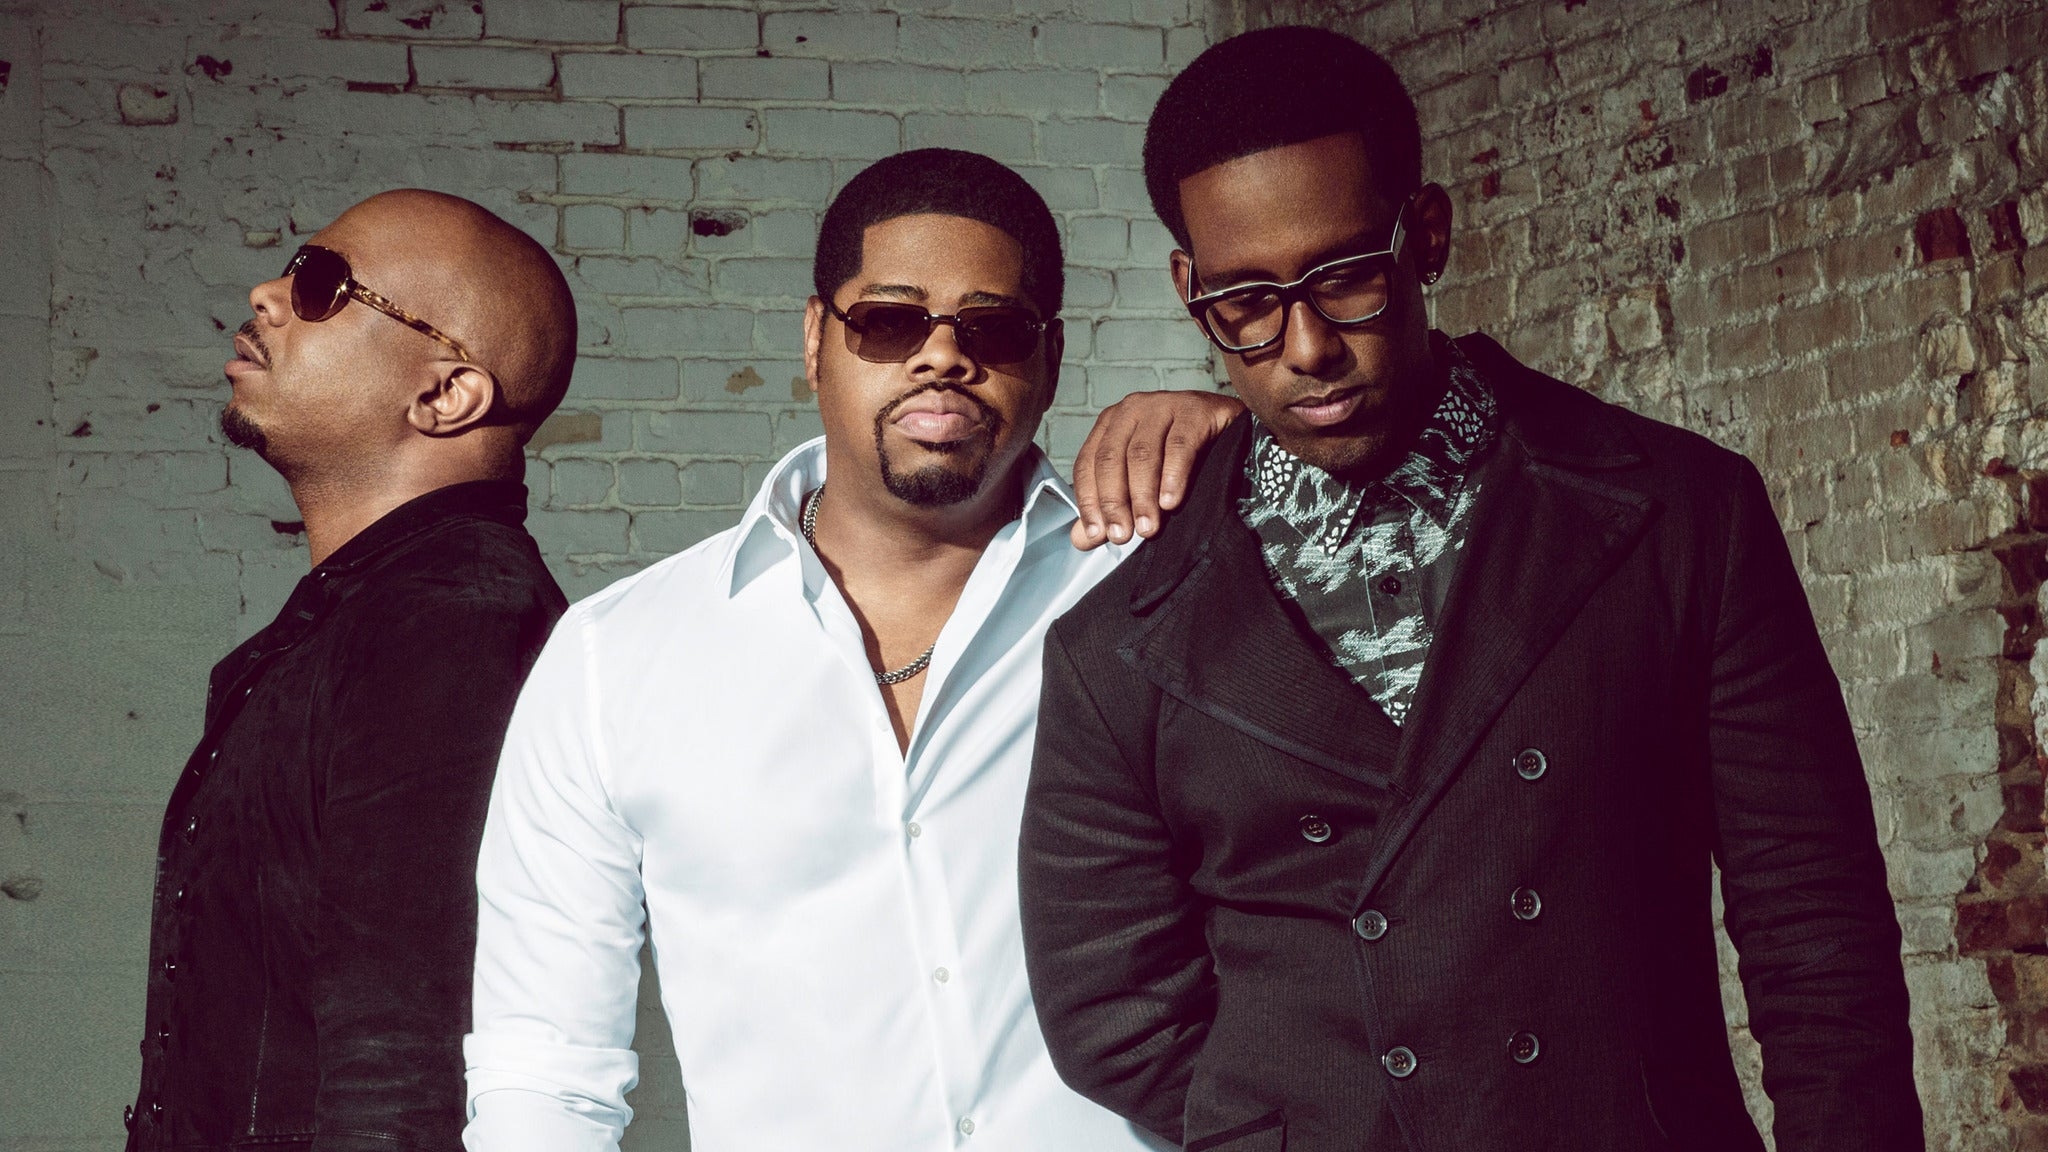 Boyz II Men - Upgrade Meet & Greet Packages